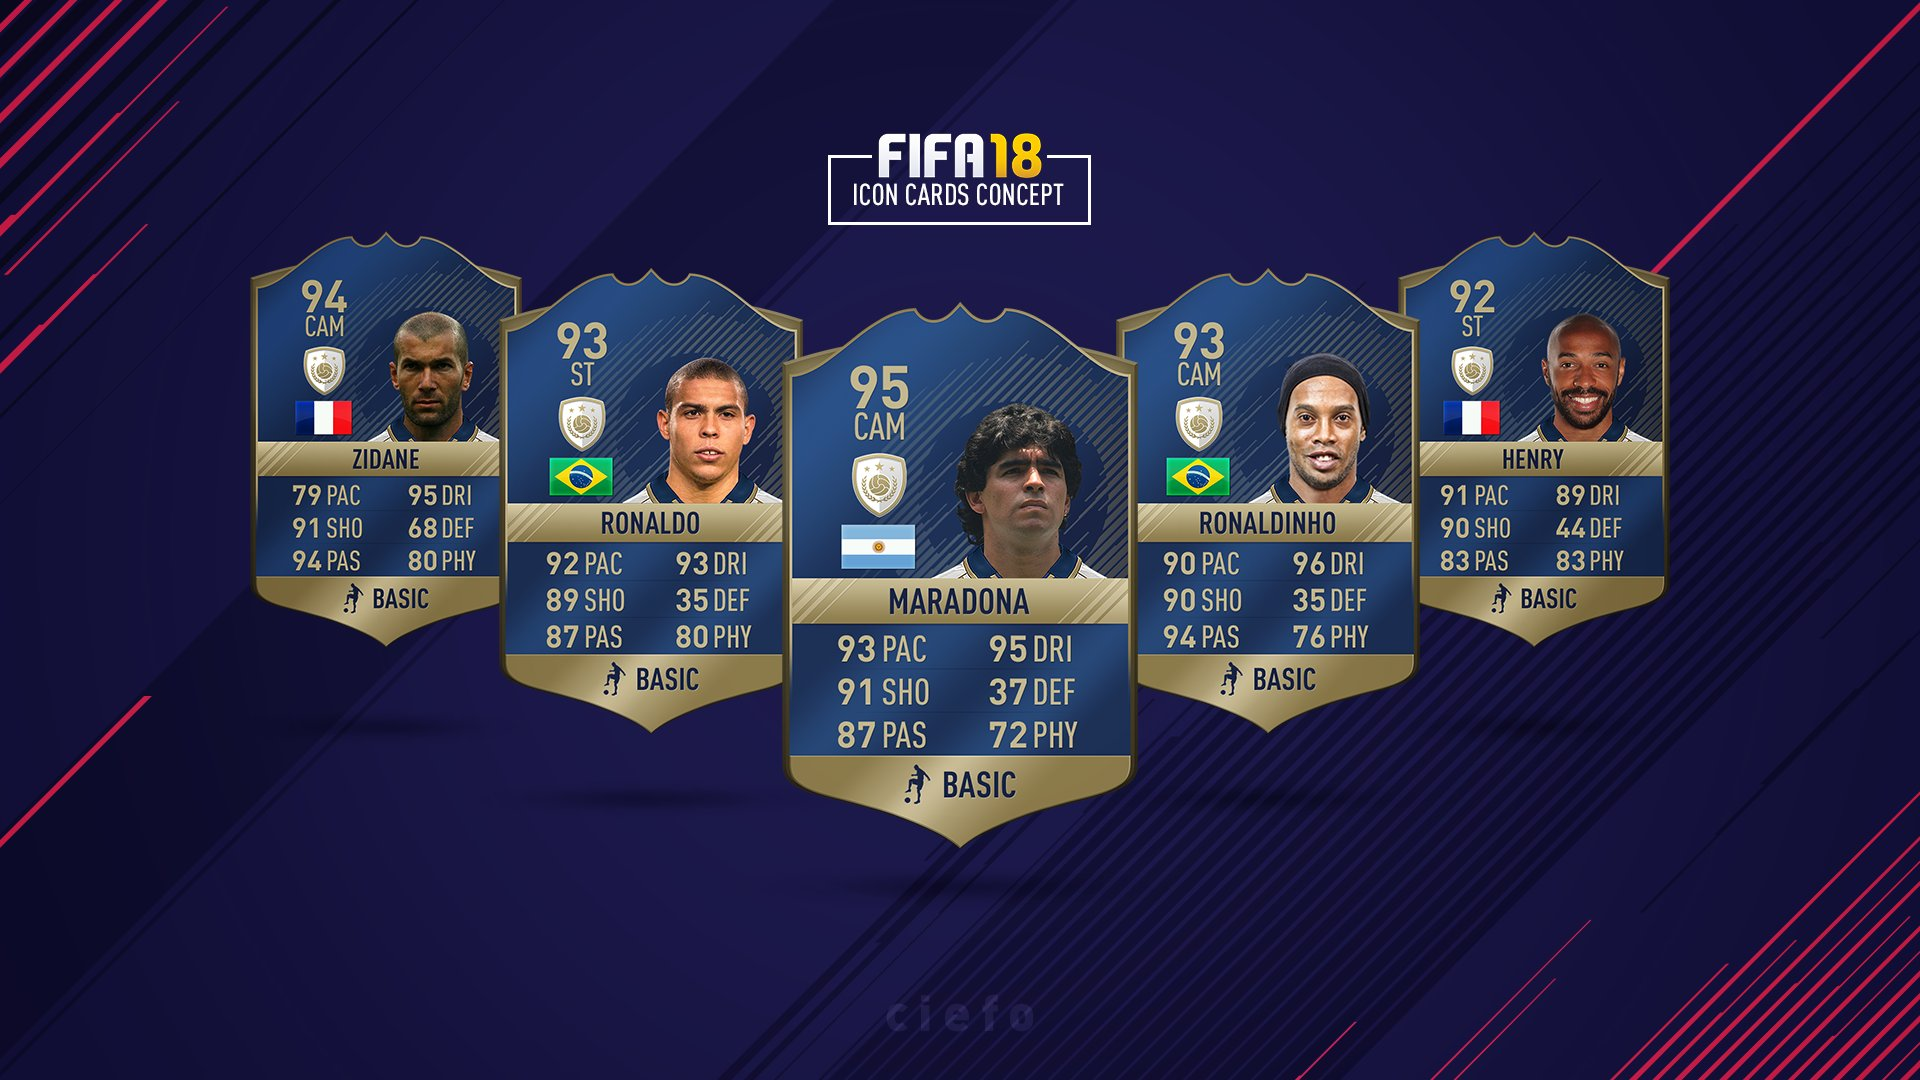 Ciefo On Twitter FIFA18 Icon Cards Concept And Are Appreciated ICONS HD Tco 8Ew6AmryPh